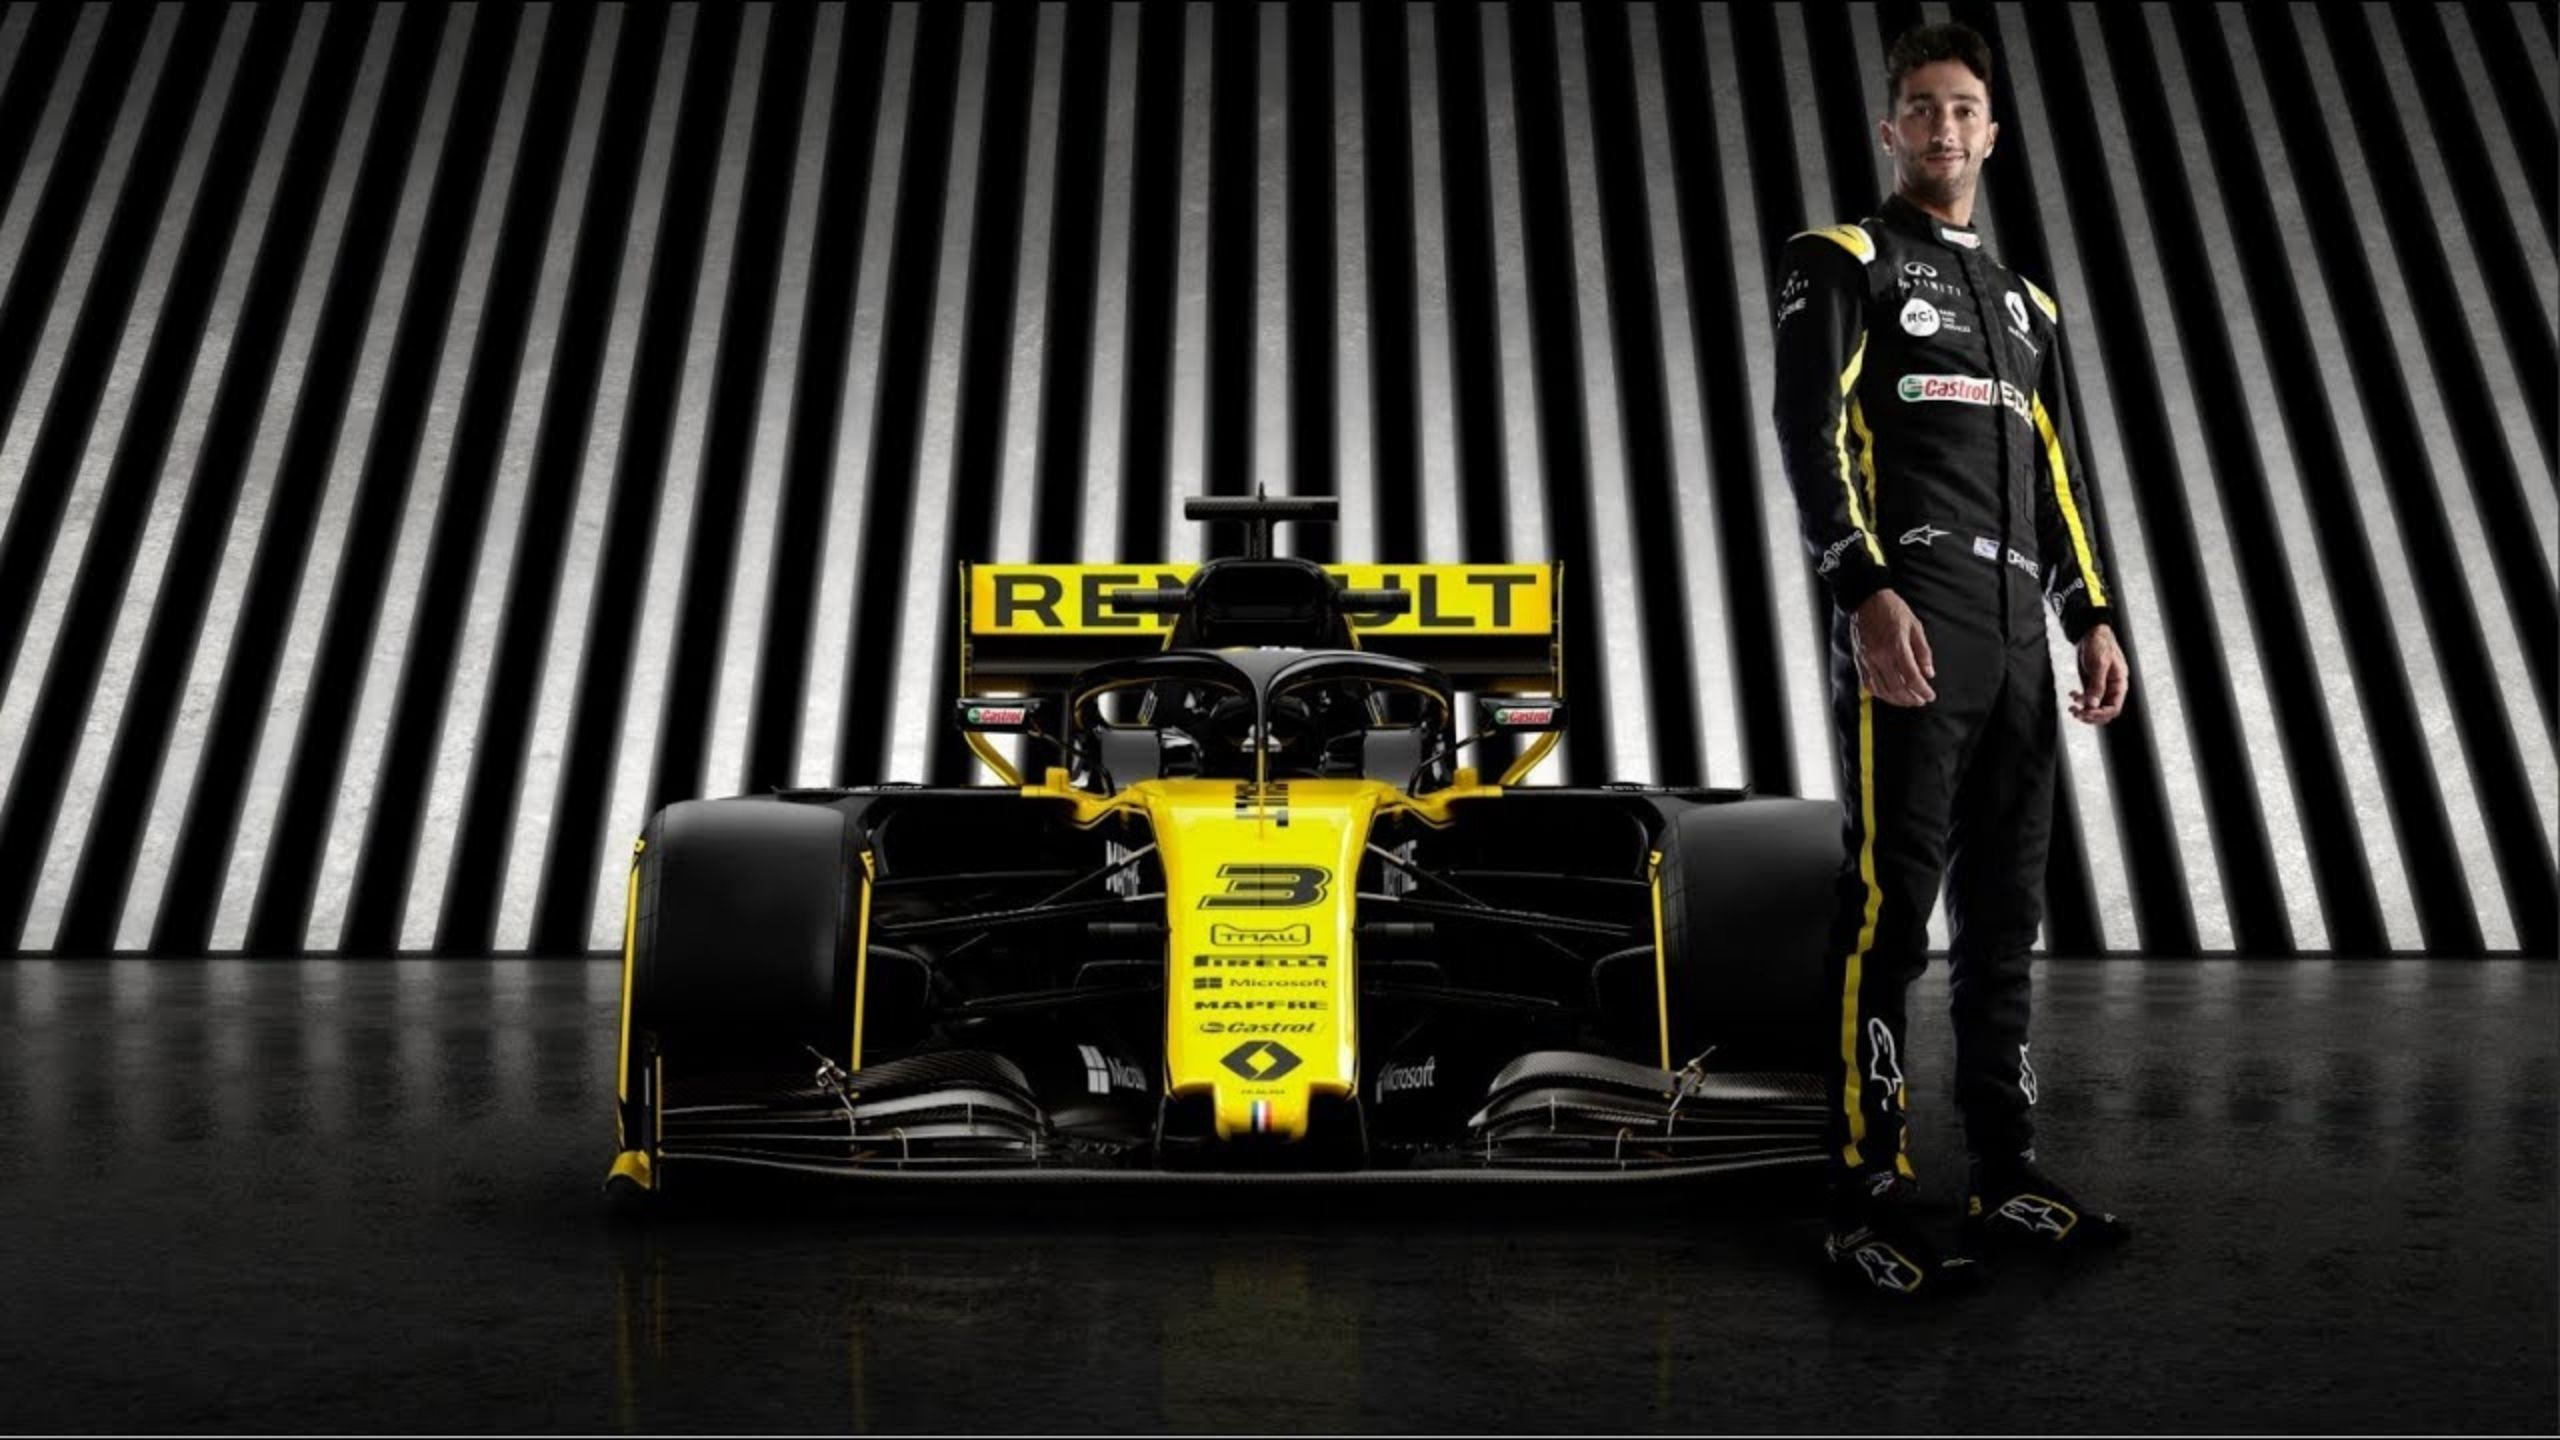 """Hearing a few F-bombs from Cyril"" - Daniel Ricciardo reminiscences his days with Renault as he begins journey at McLaren"